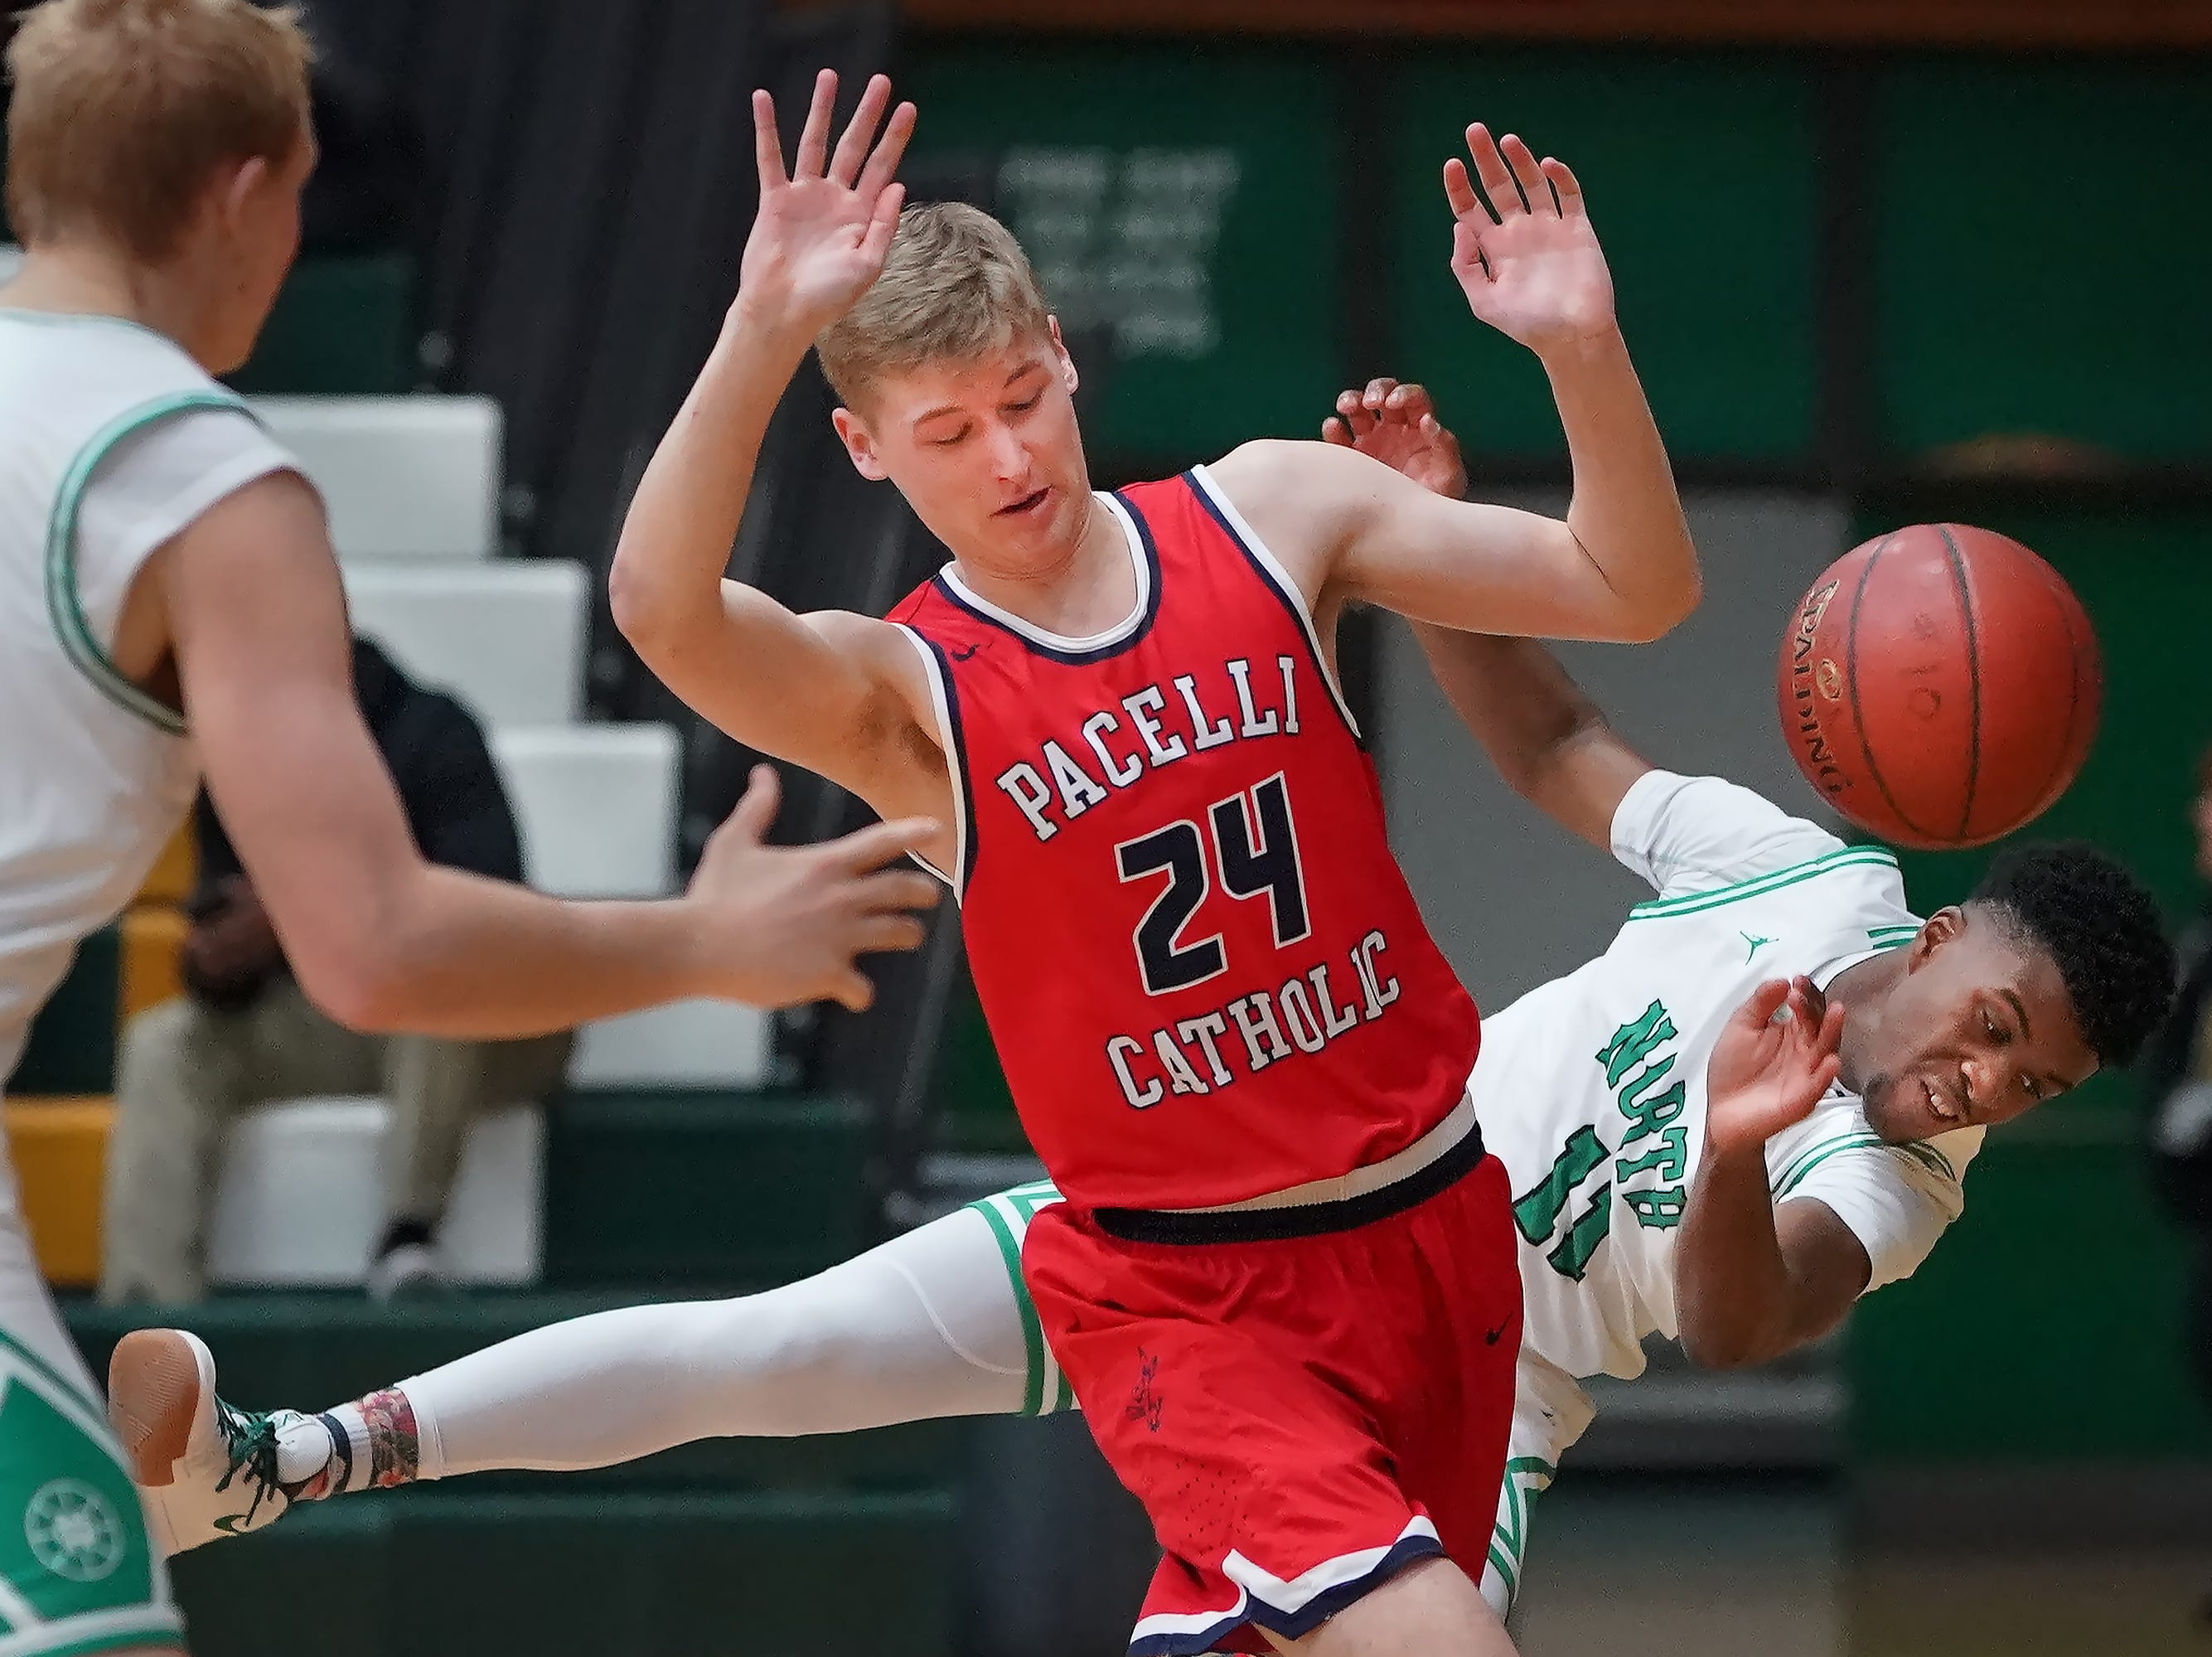 Abe Schiek (11) of Oshkosh North tries to keep the ball in bounds in the first half. The Oshkosh North Spartans hosted the Stevens Point Pacelli Catholic Cardinals in the Friday night game of the Fox River Brewing Thanksgiving Classic Tournament.